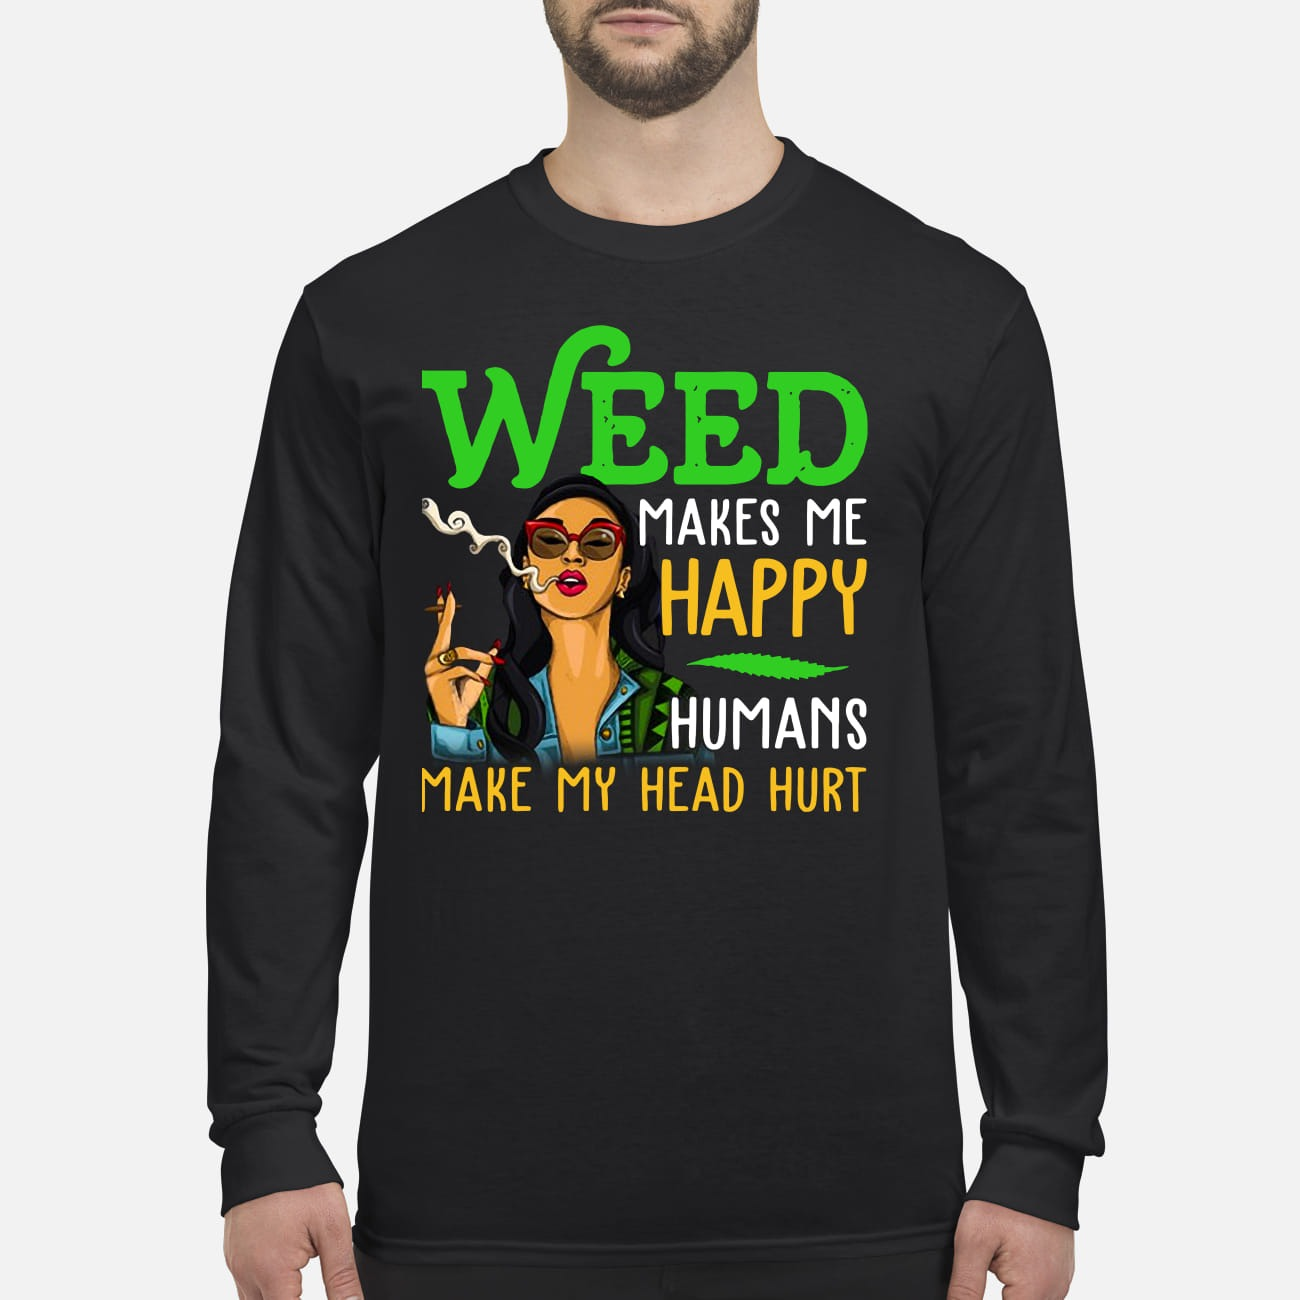 Weed makes me happy humans make my head hurt men's long sleeved shirt